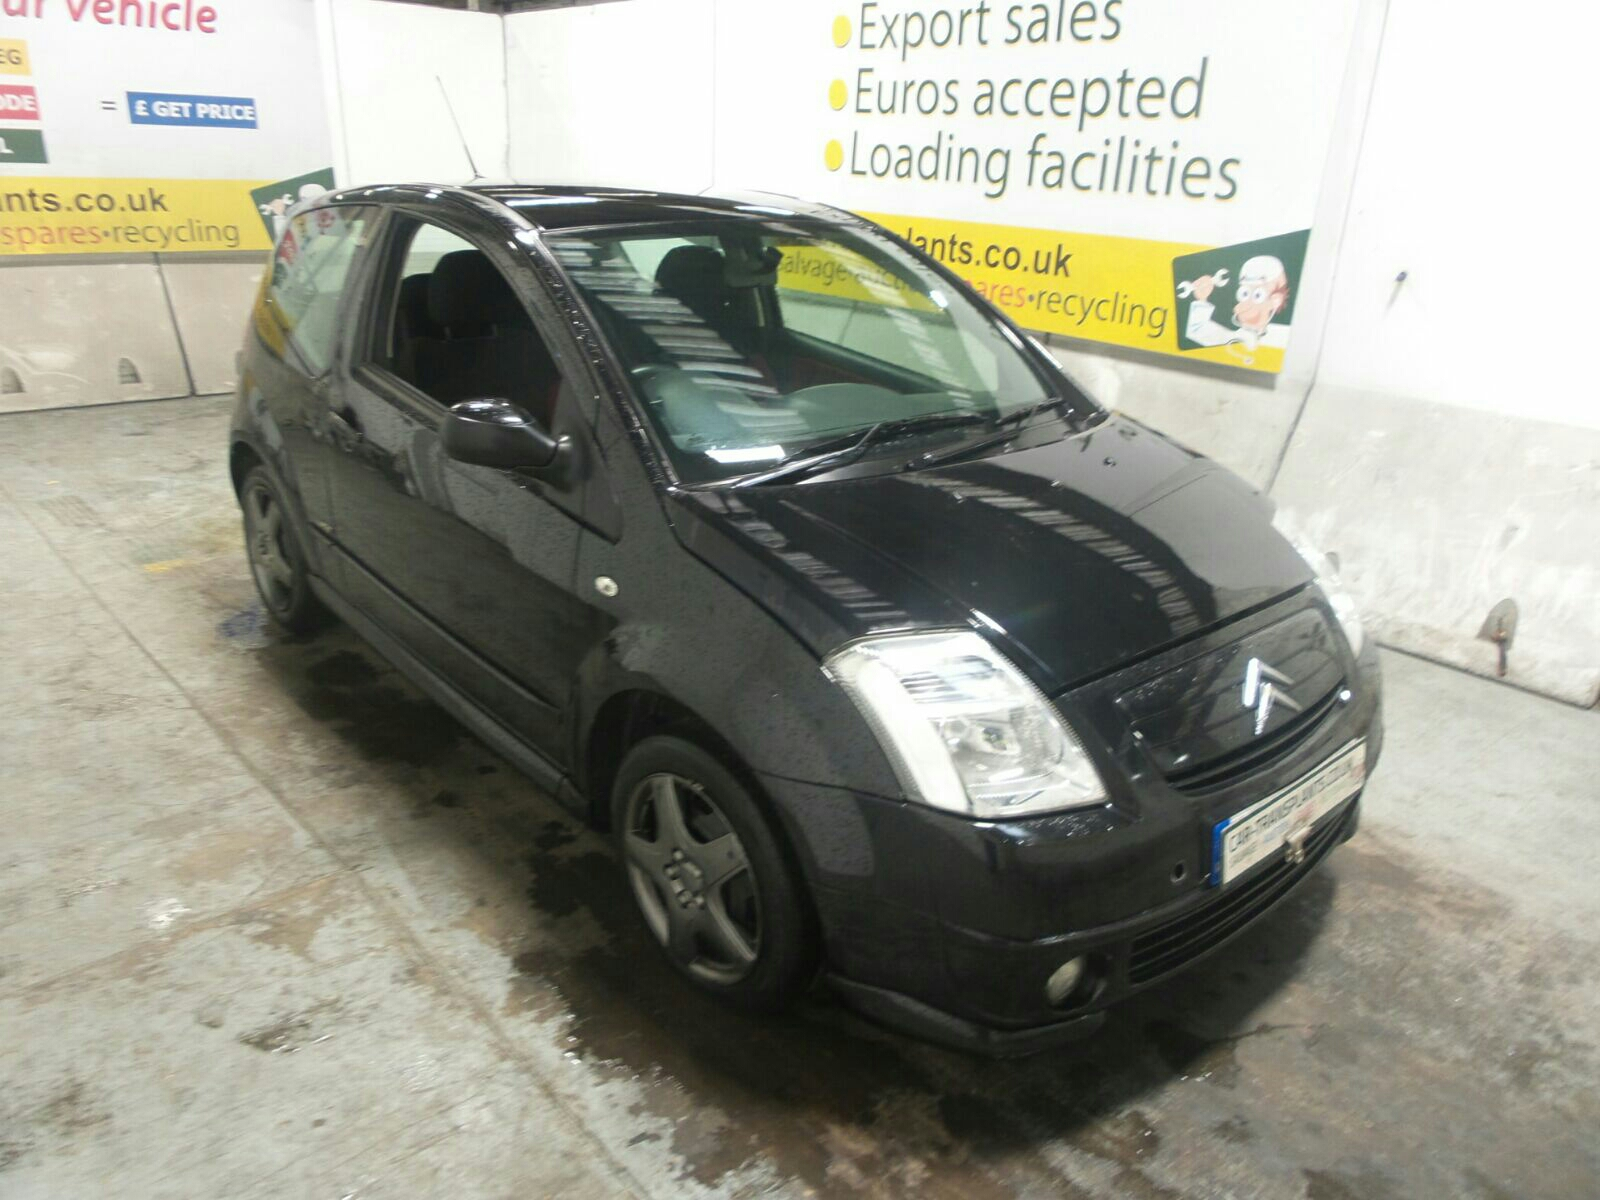 2007 citroen c2 furio 1360cc petrol manual 5 speed 3 door. Black Bedroom Furniture Sets. Home Design Ideas